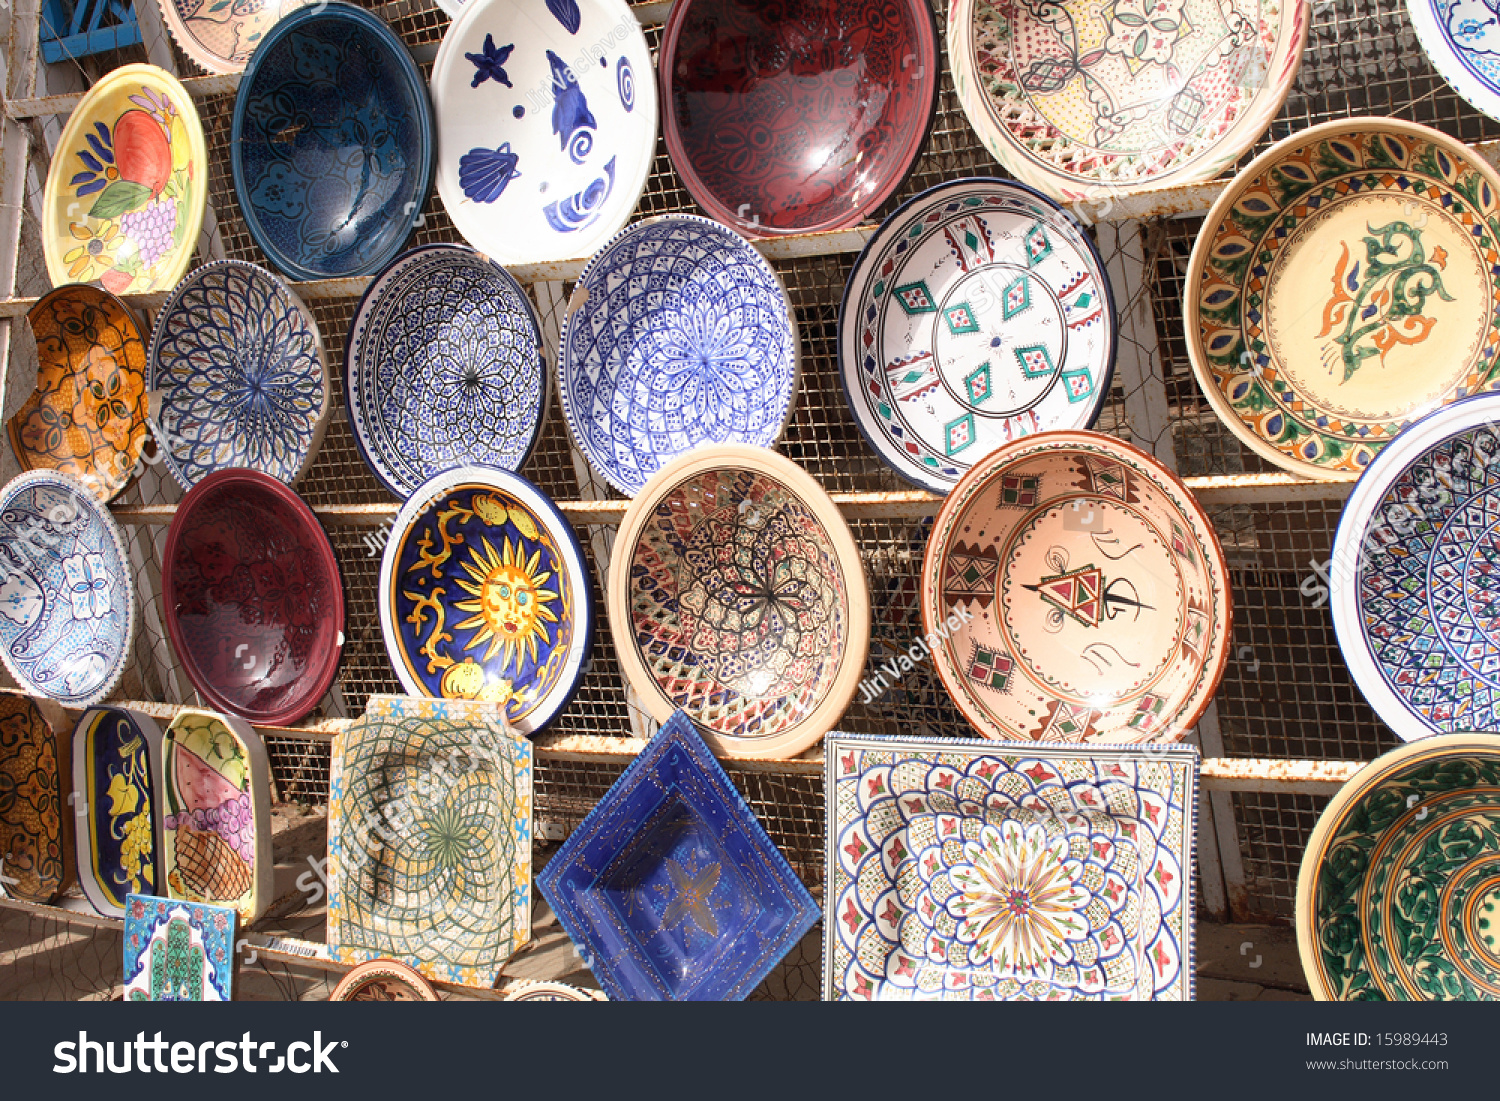 & Tunisian Pottery Stock Photo (Royalty Free) 15989443 - Shutterstock